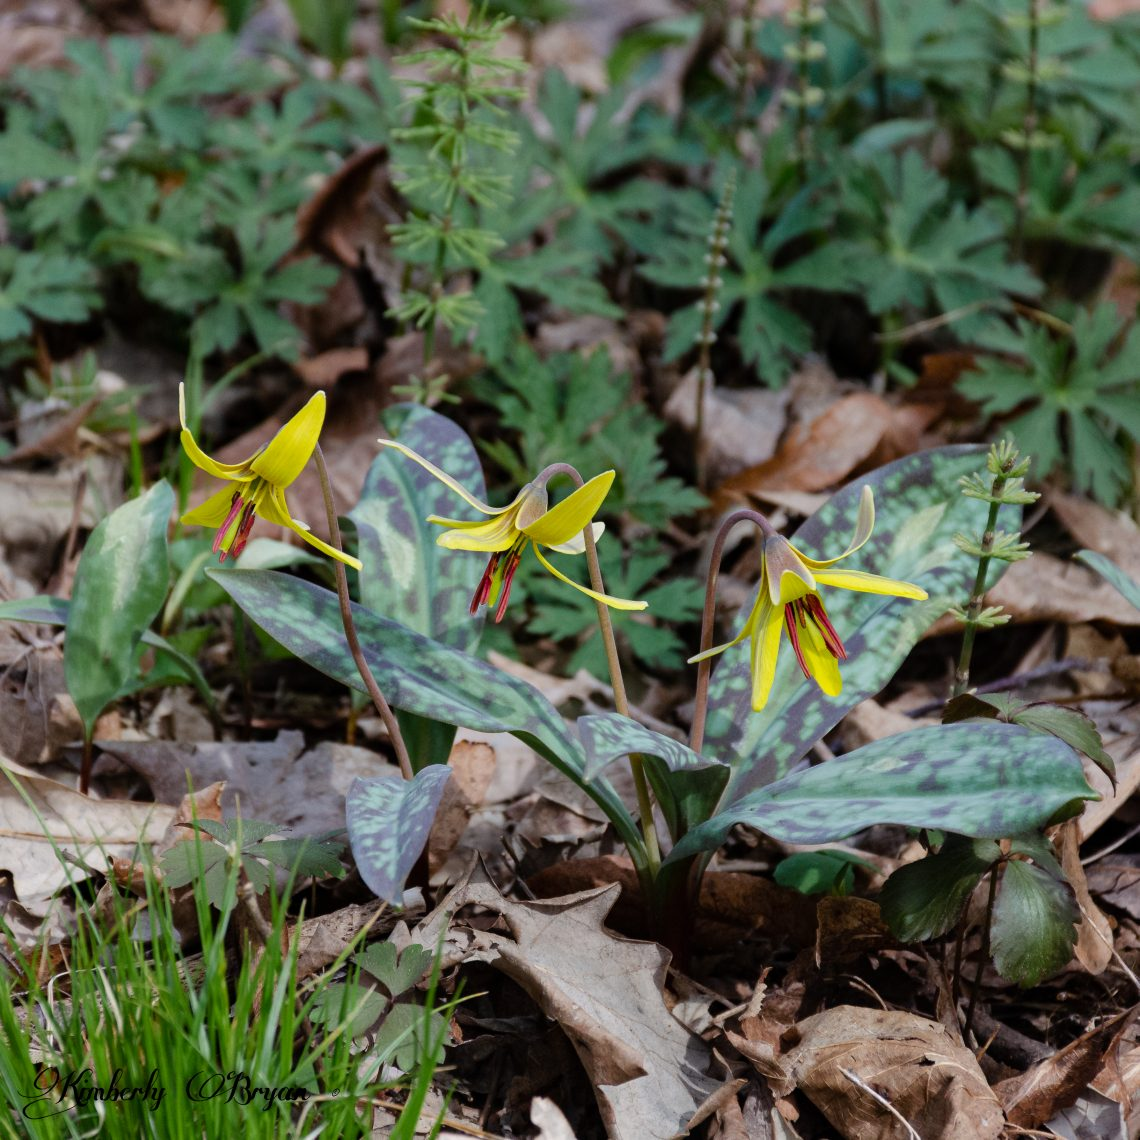 You are looking at Trout Lillie's a native woodland perennial that blooms early spring. It looks like a mini Lillie colored yellow and red. It's leaves are green with darker green spots. Happy Mother's To Us All!